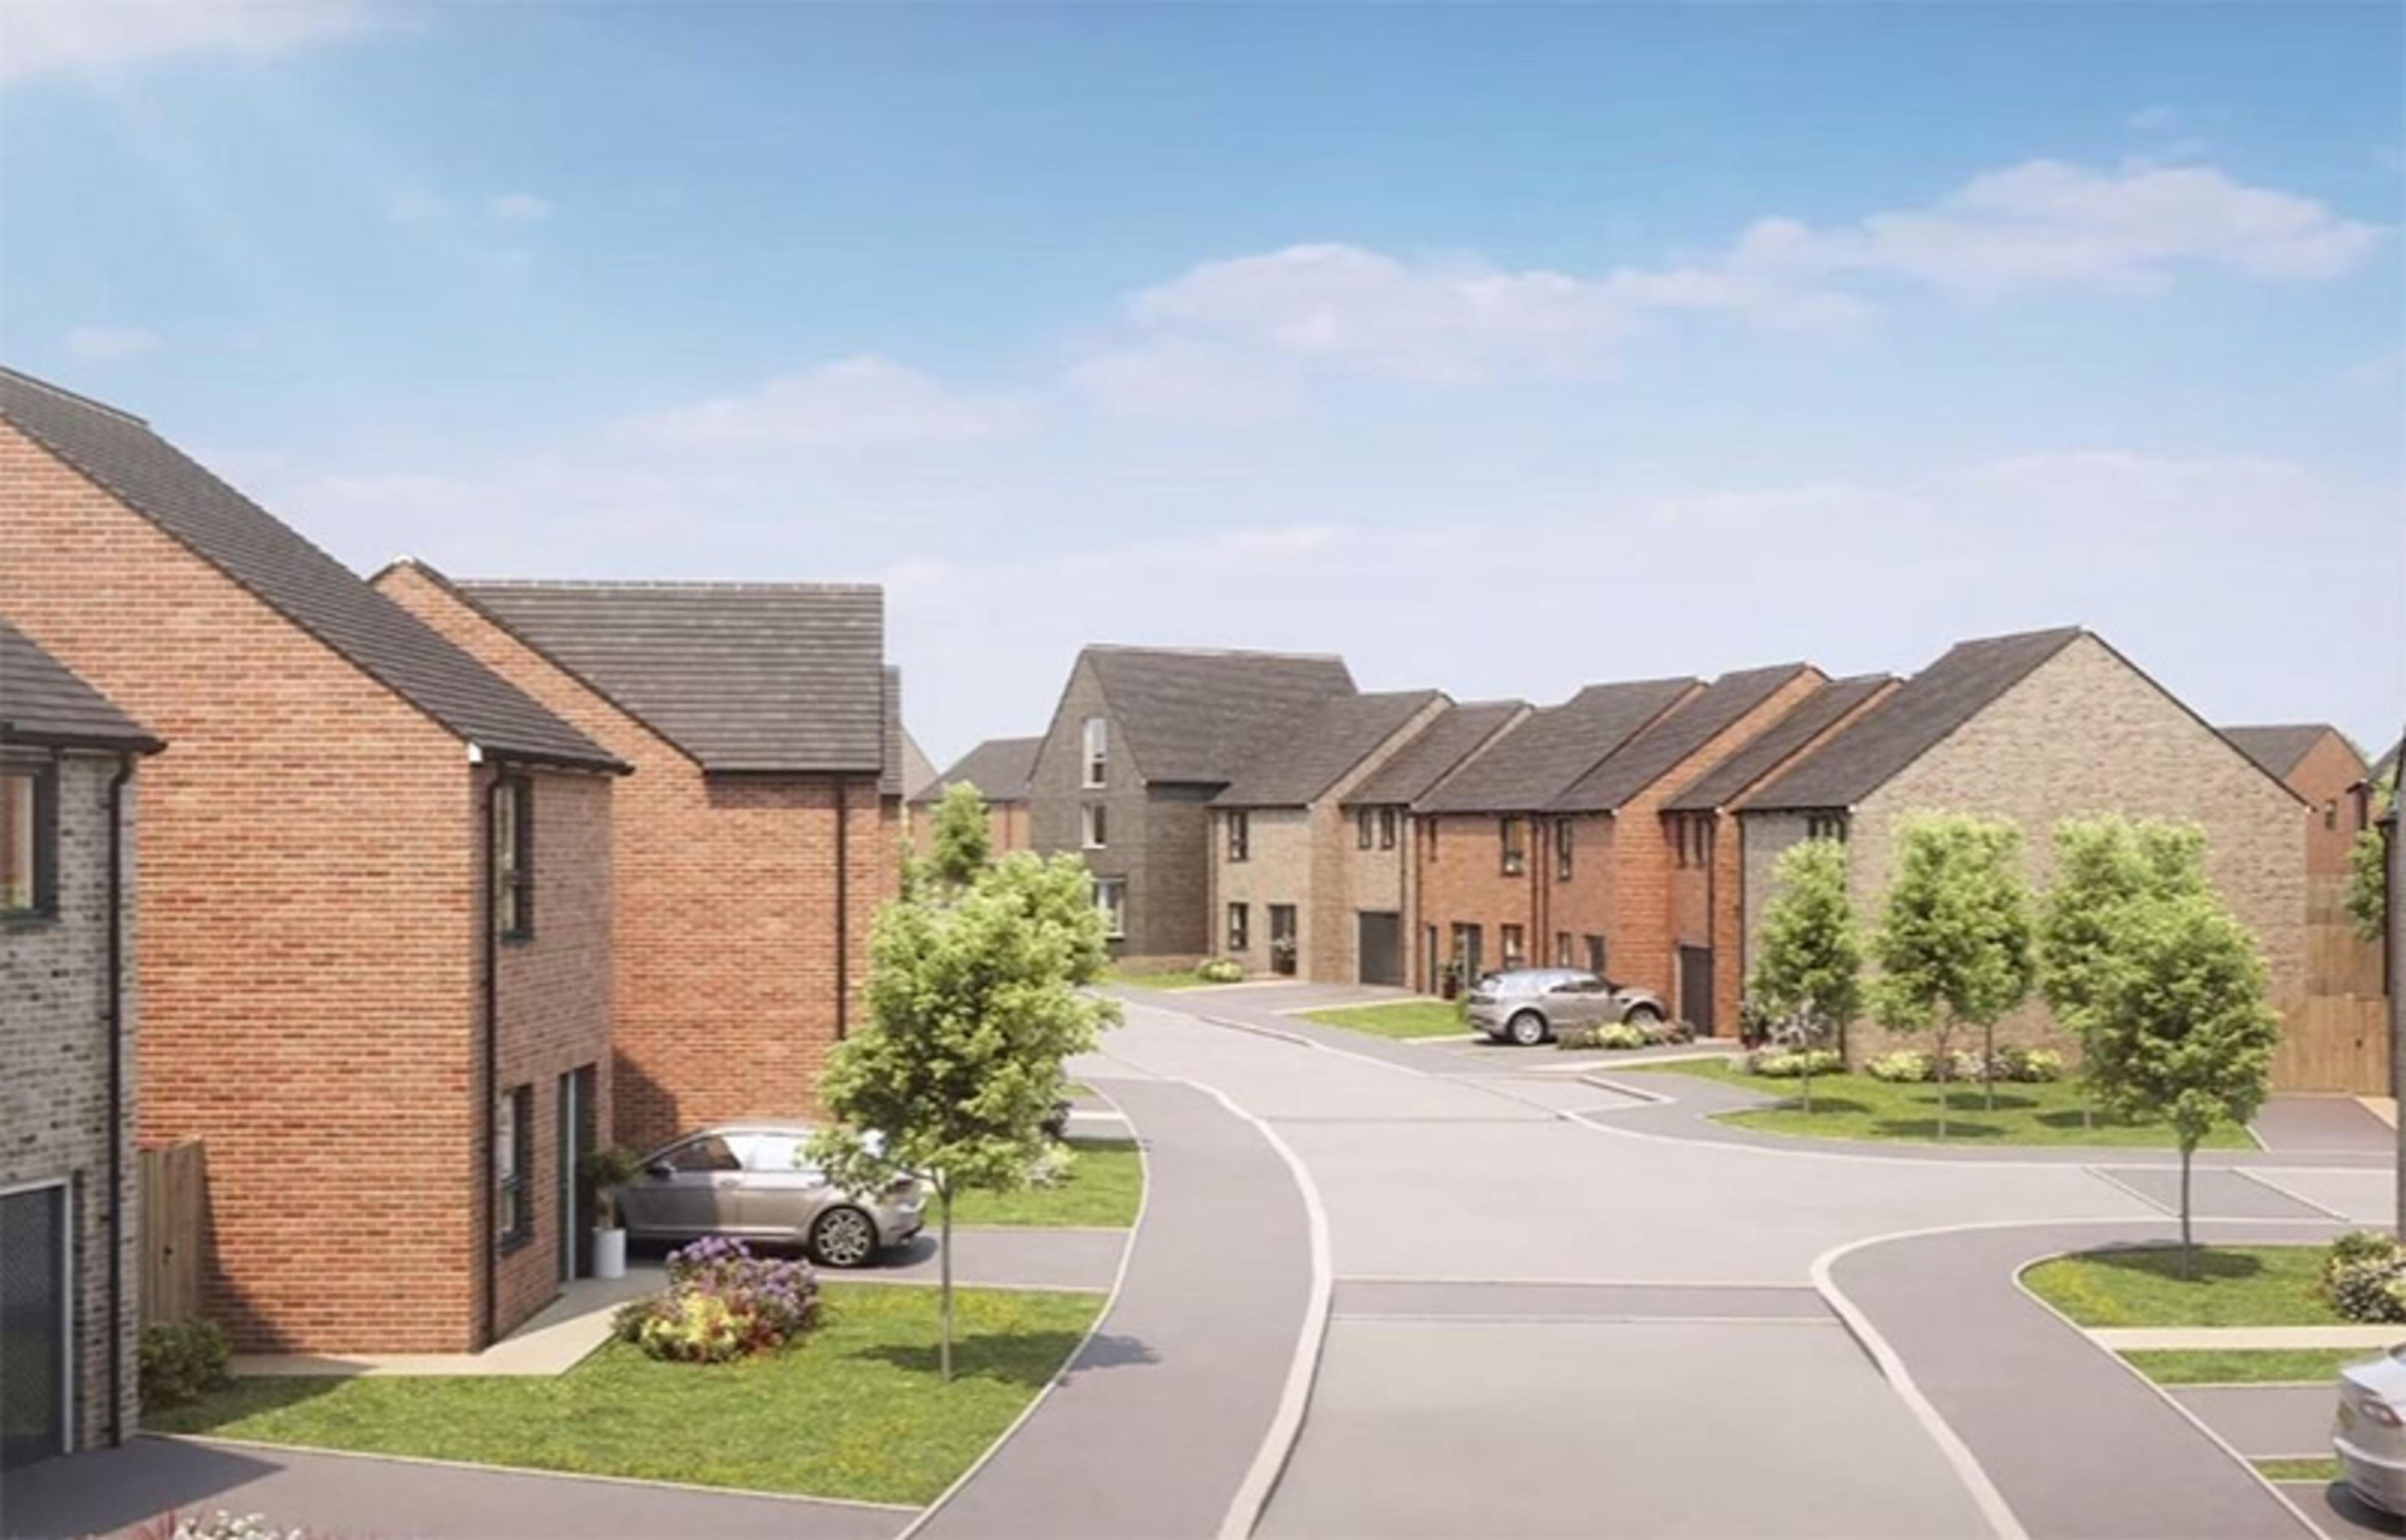 CGI of new-build homes with gardens and cars in driveways at Ellison Grove, Hebburn